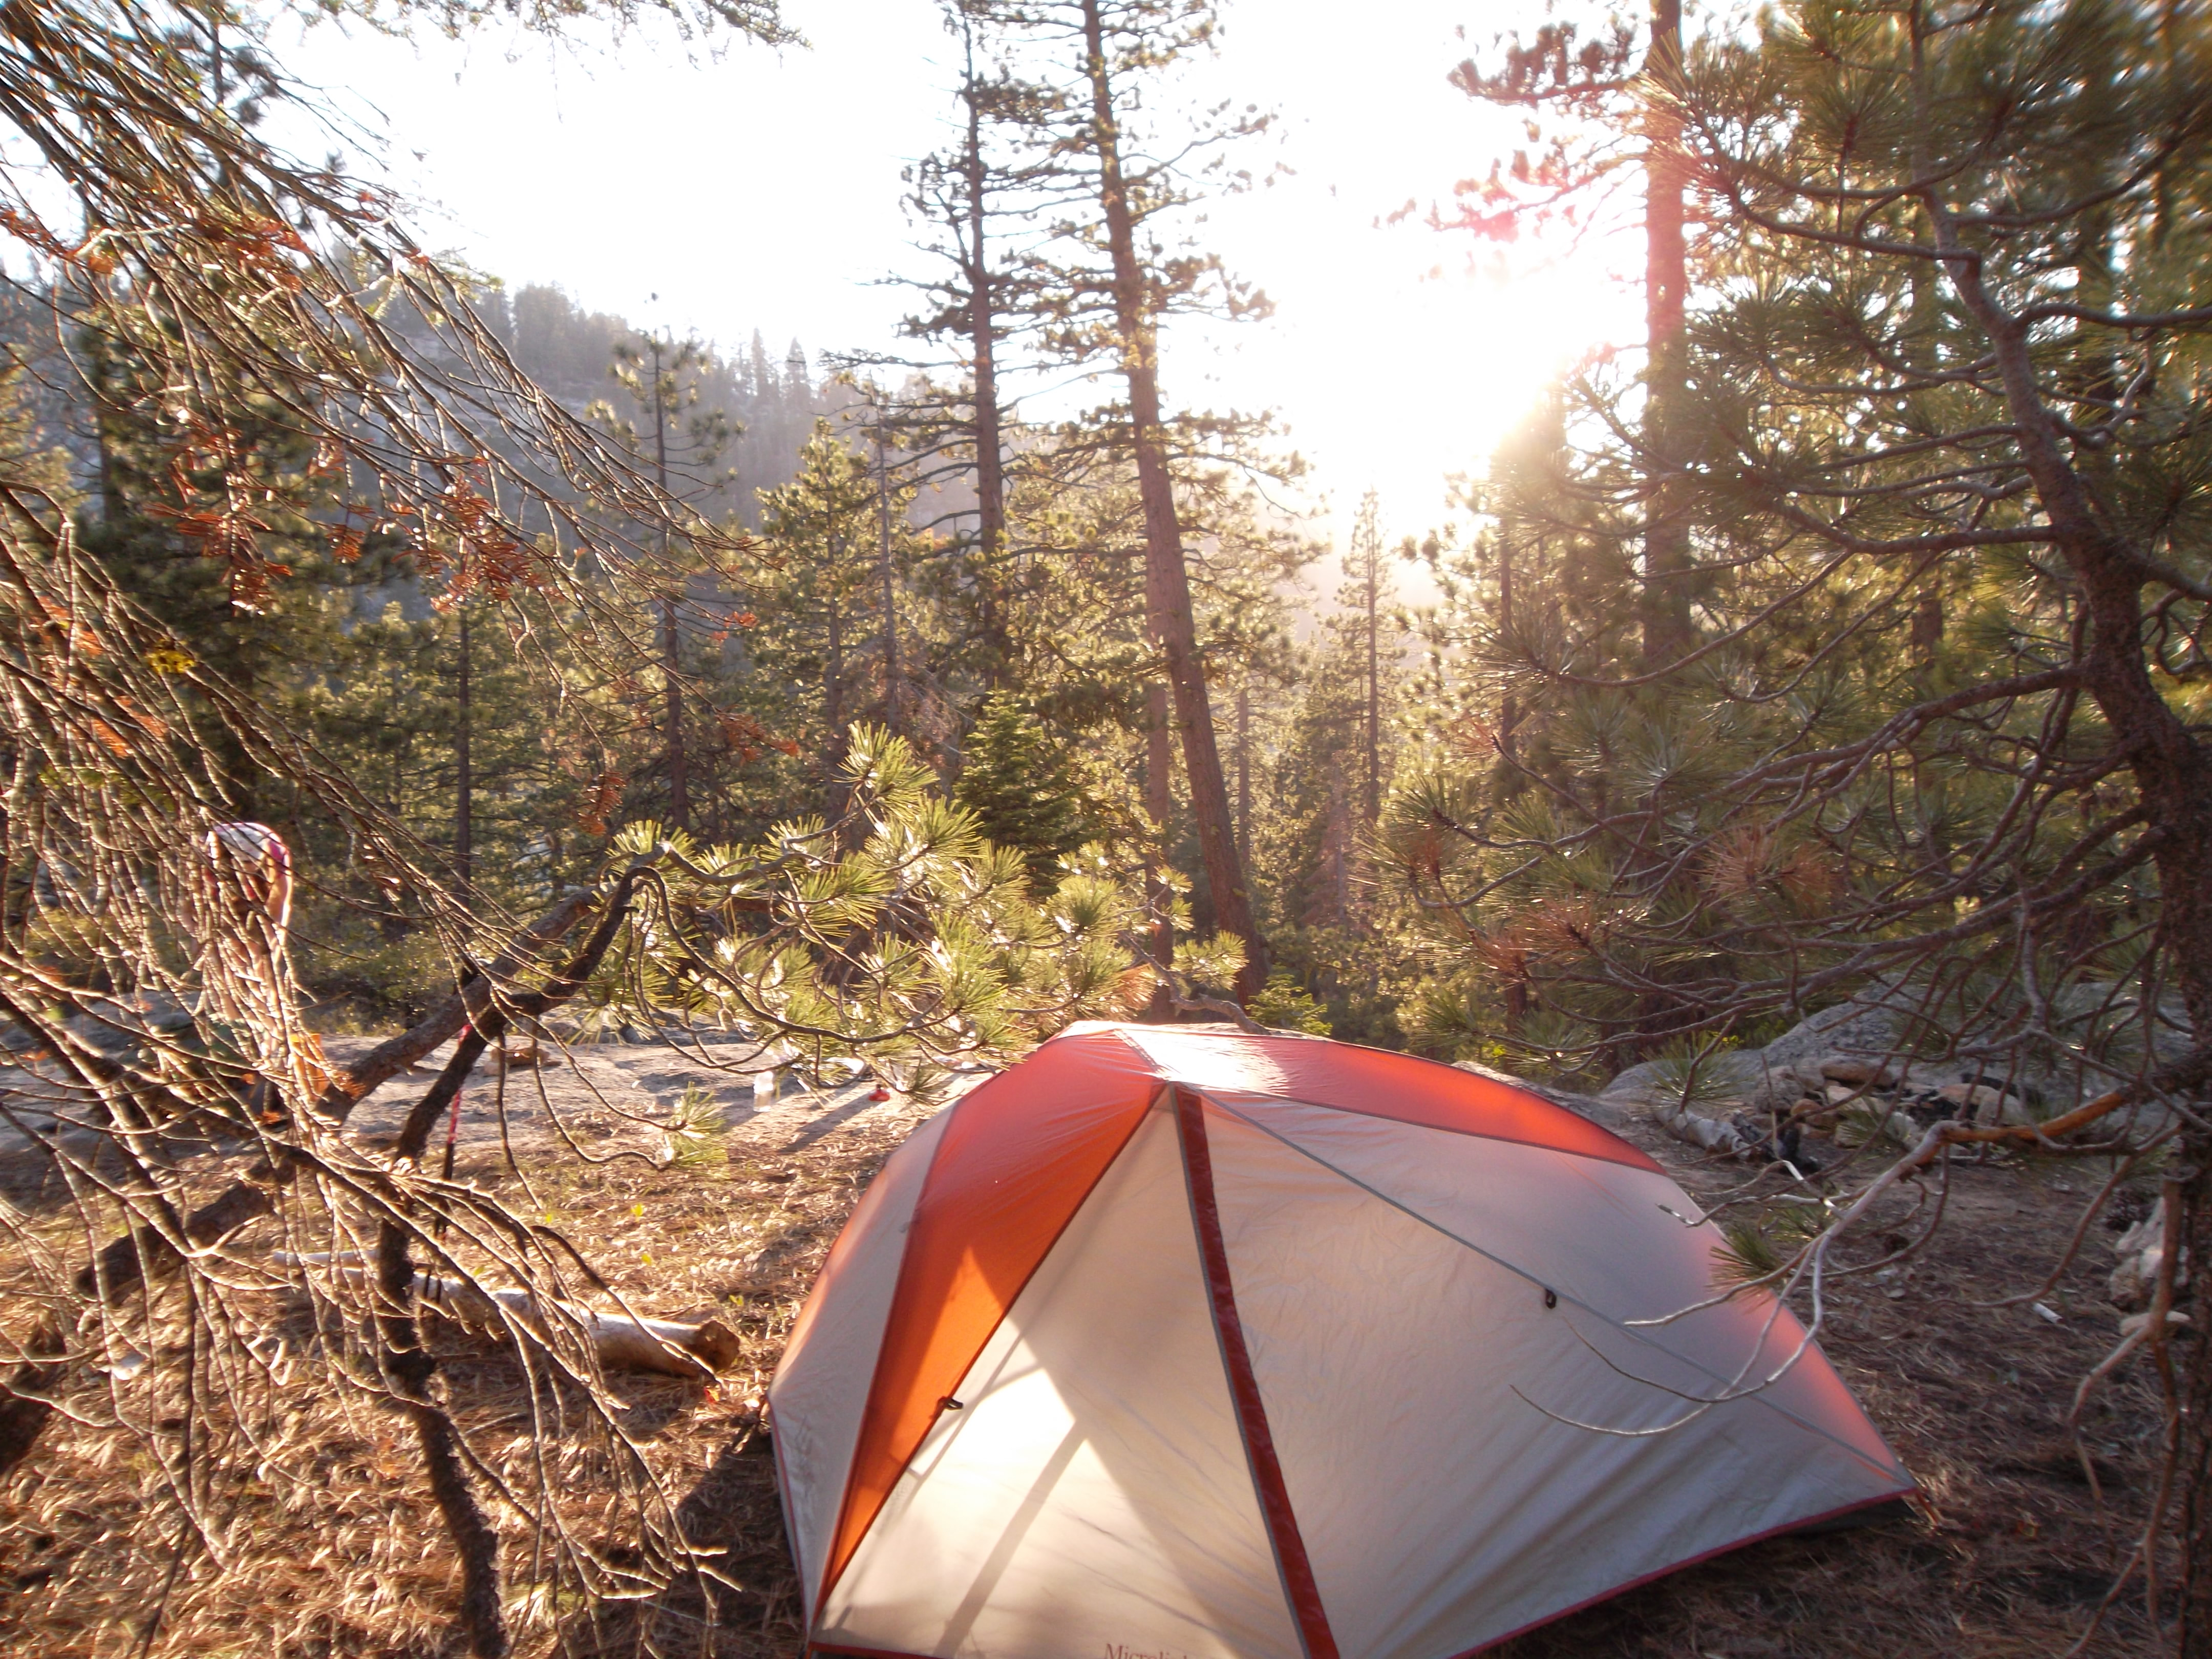 l.l.bean Microlite FS 2 & L.L.Bean Microlight FS 2-Person Tent Review | TreeLineBackpacker